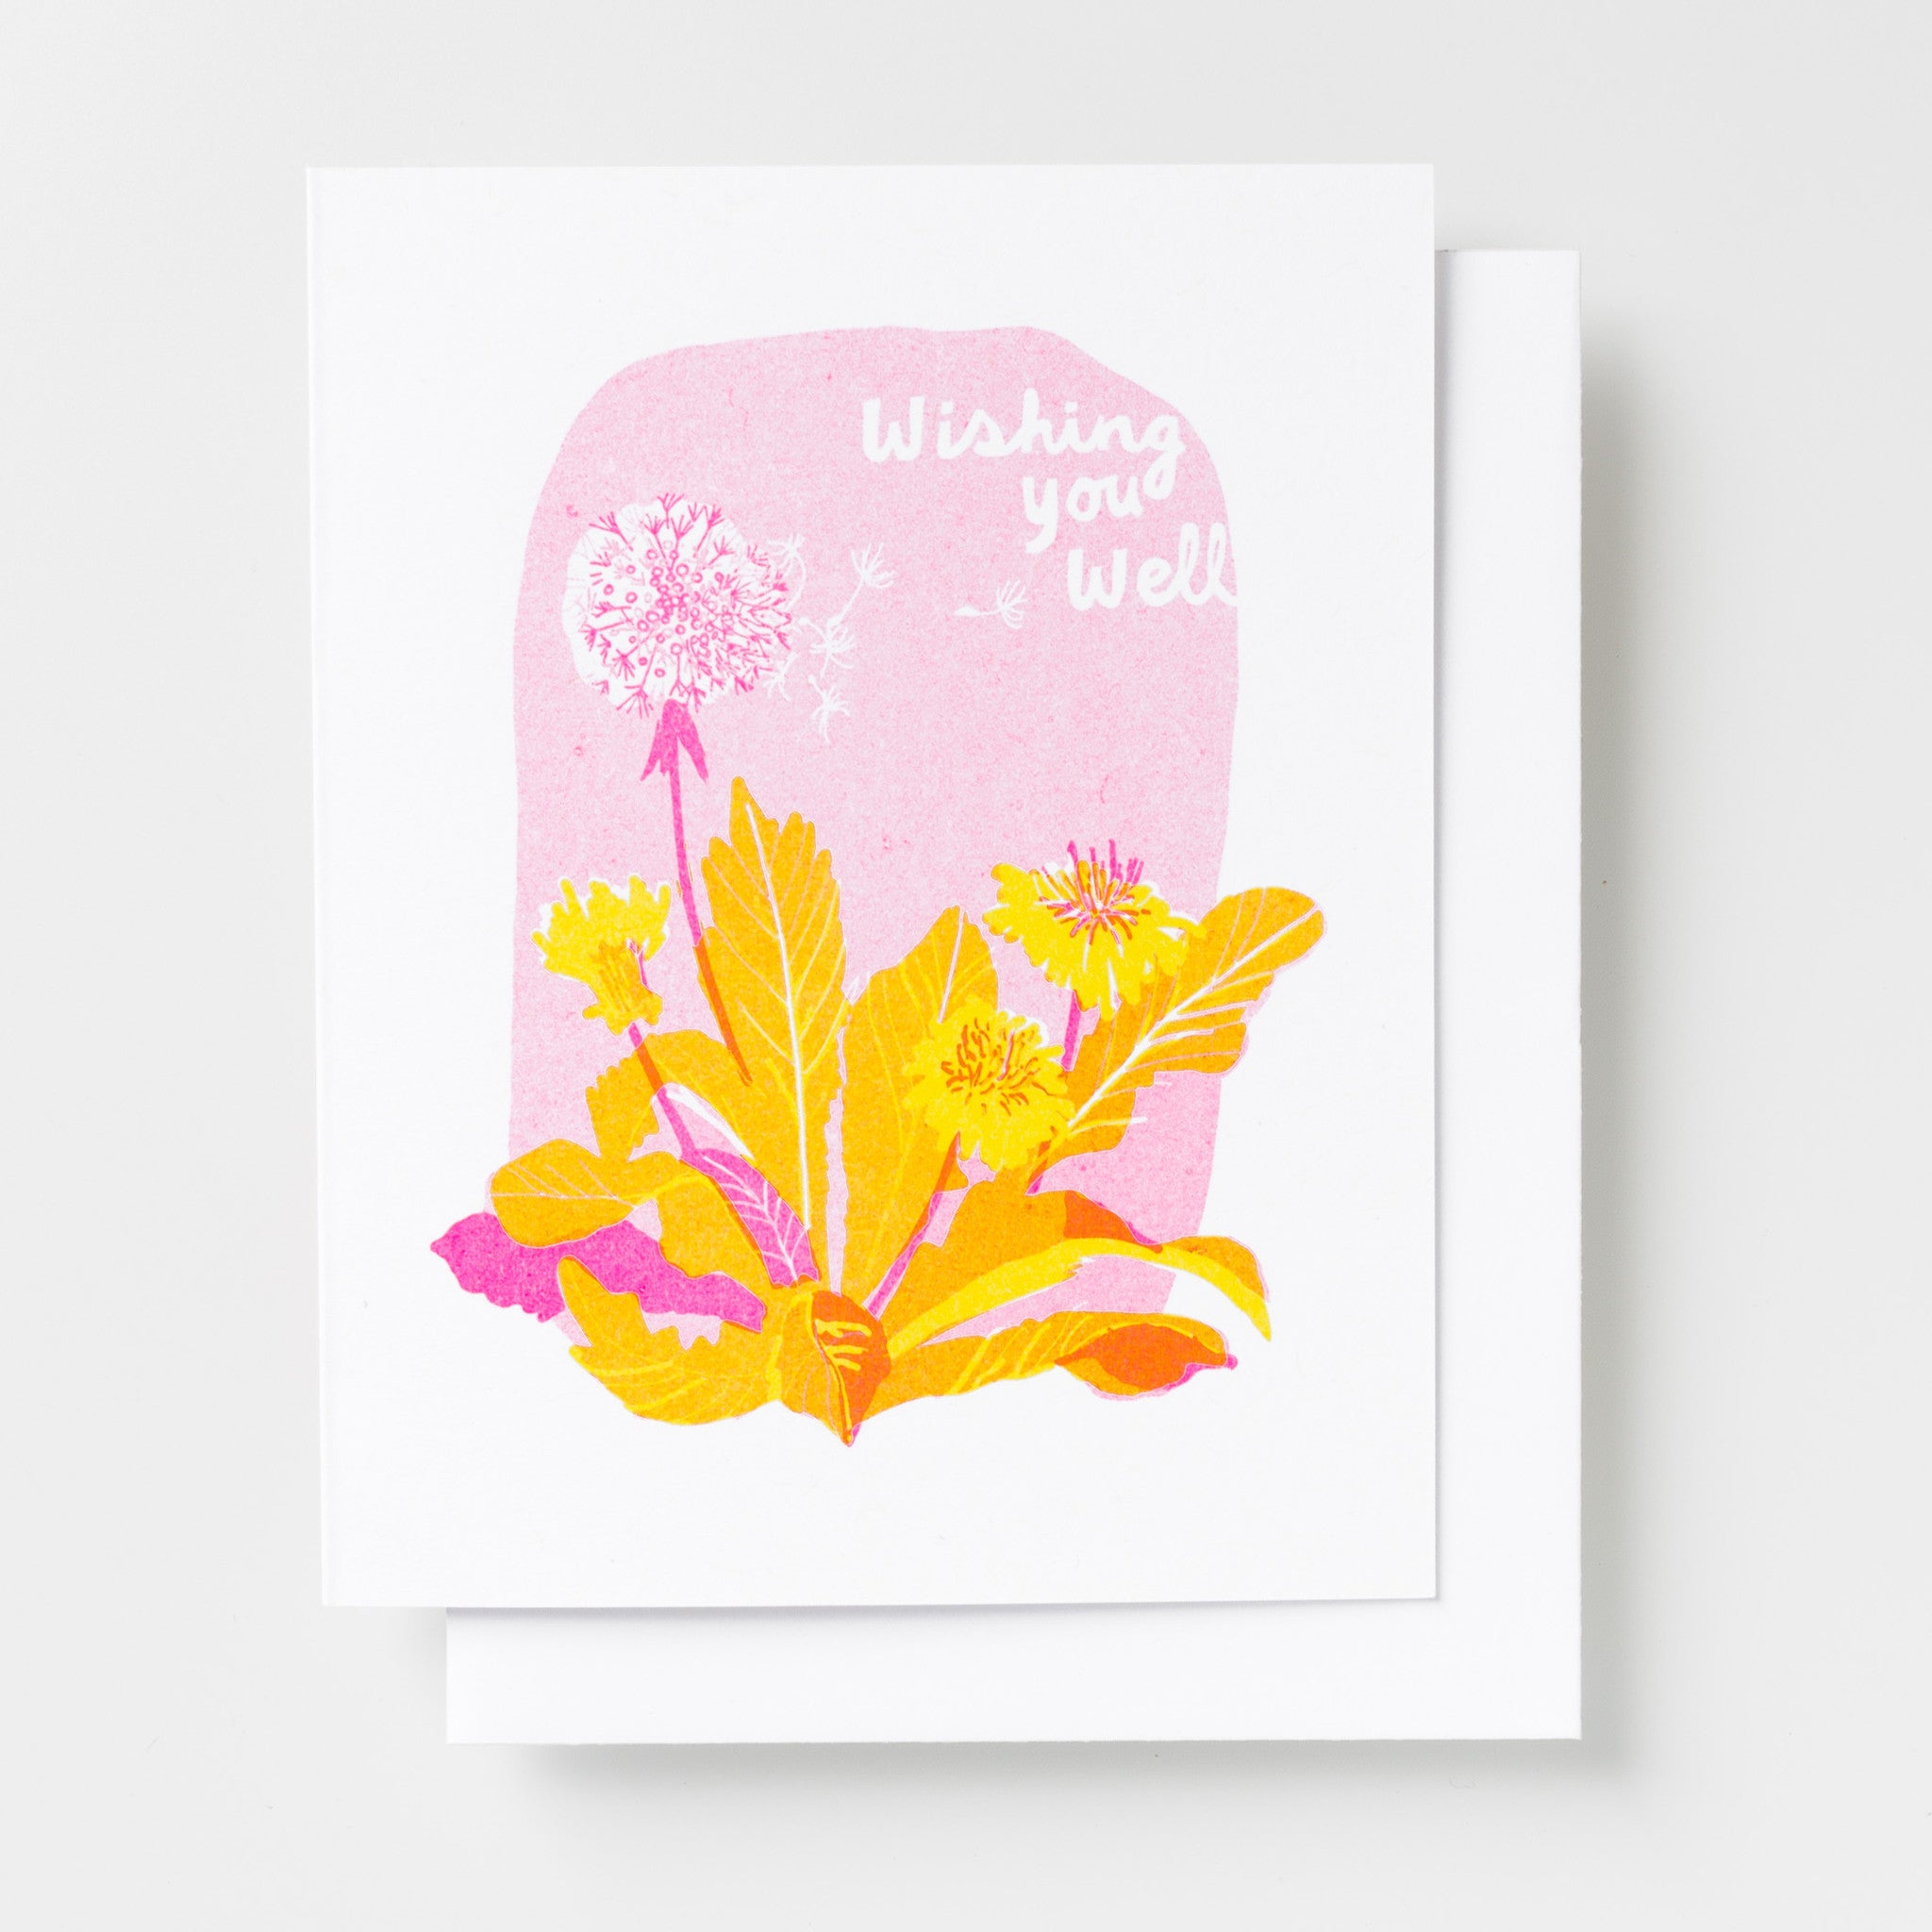 Wishing You Well - Risograph Card